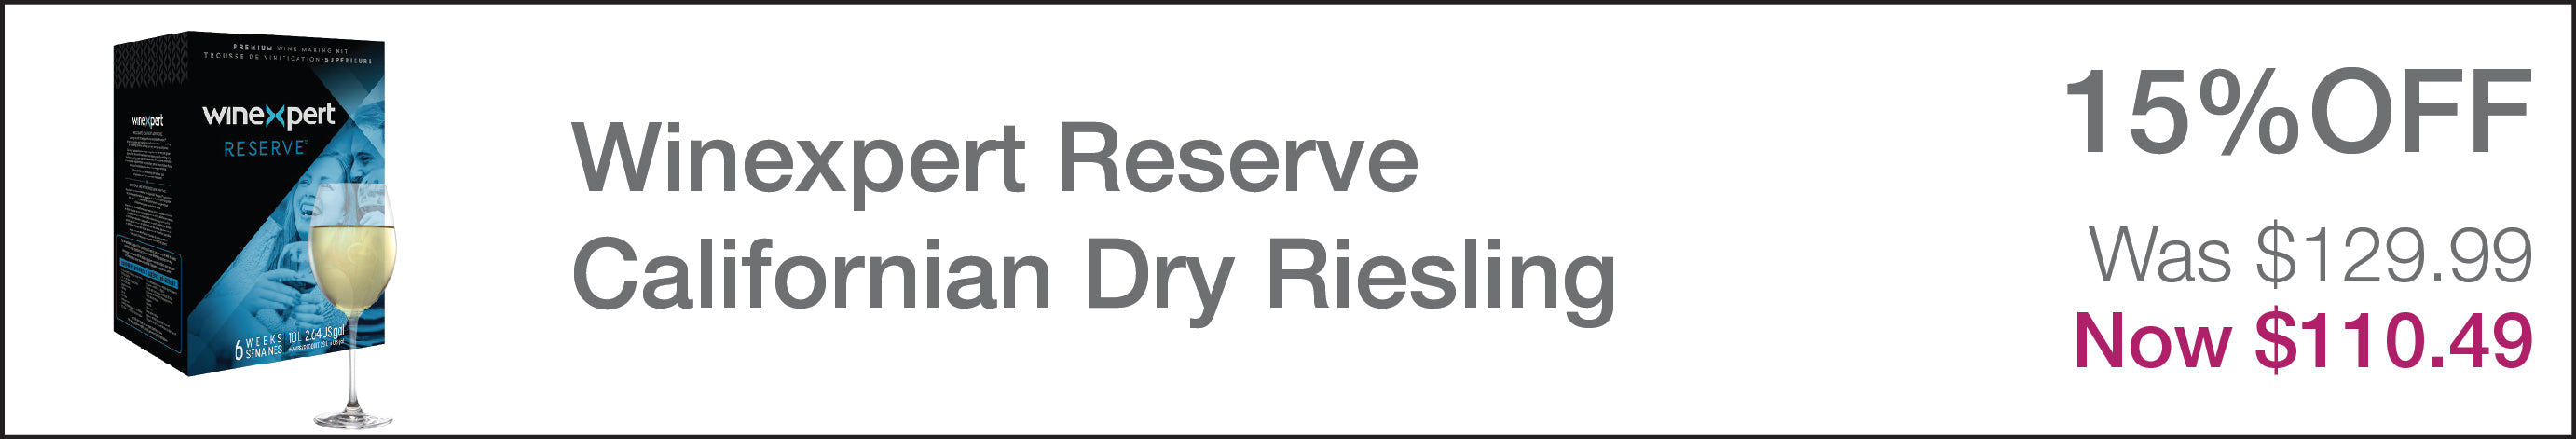 Winexpert Reserve Californian Dry Riesling